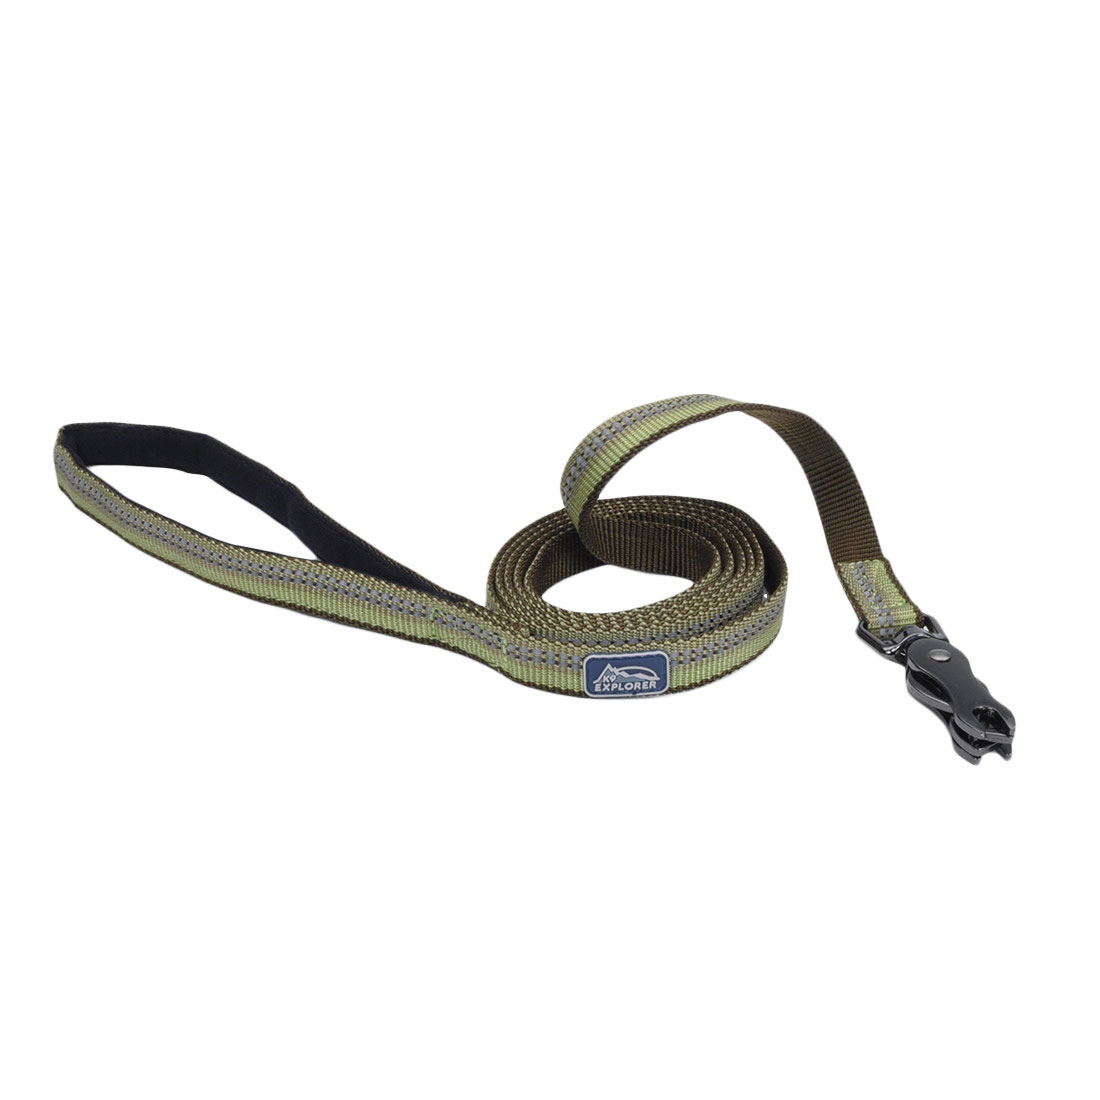 K9 Explorer® Reflective Dog Leash with Scissor Snap